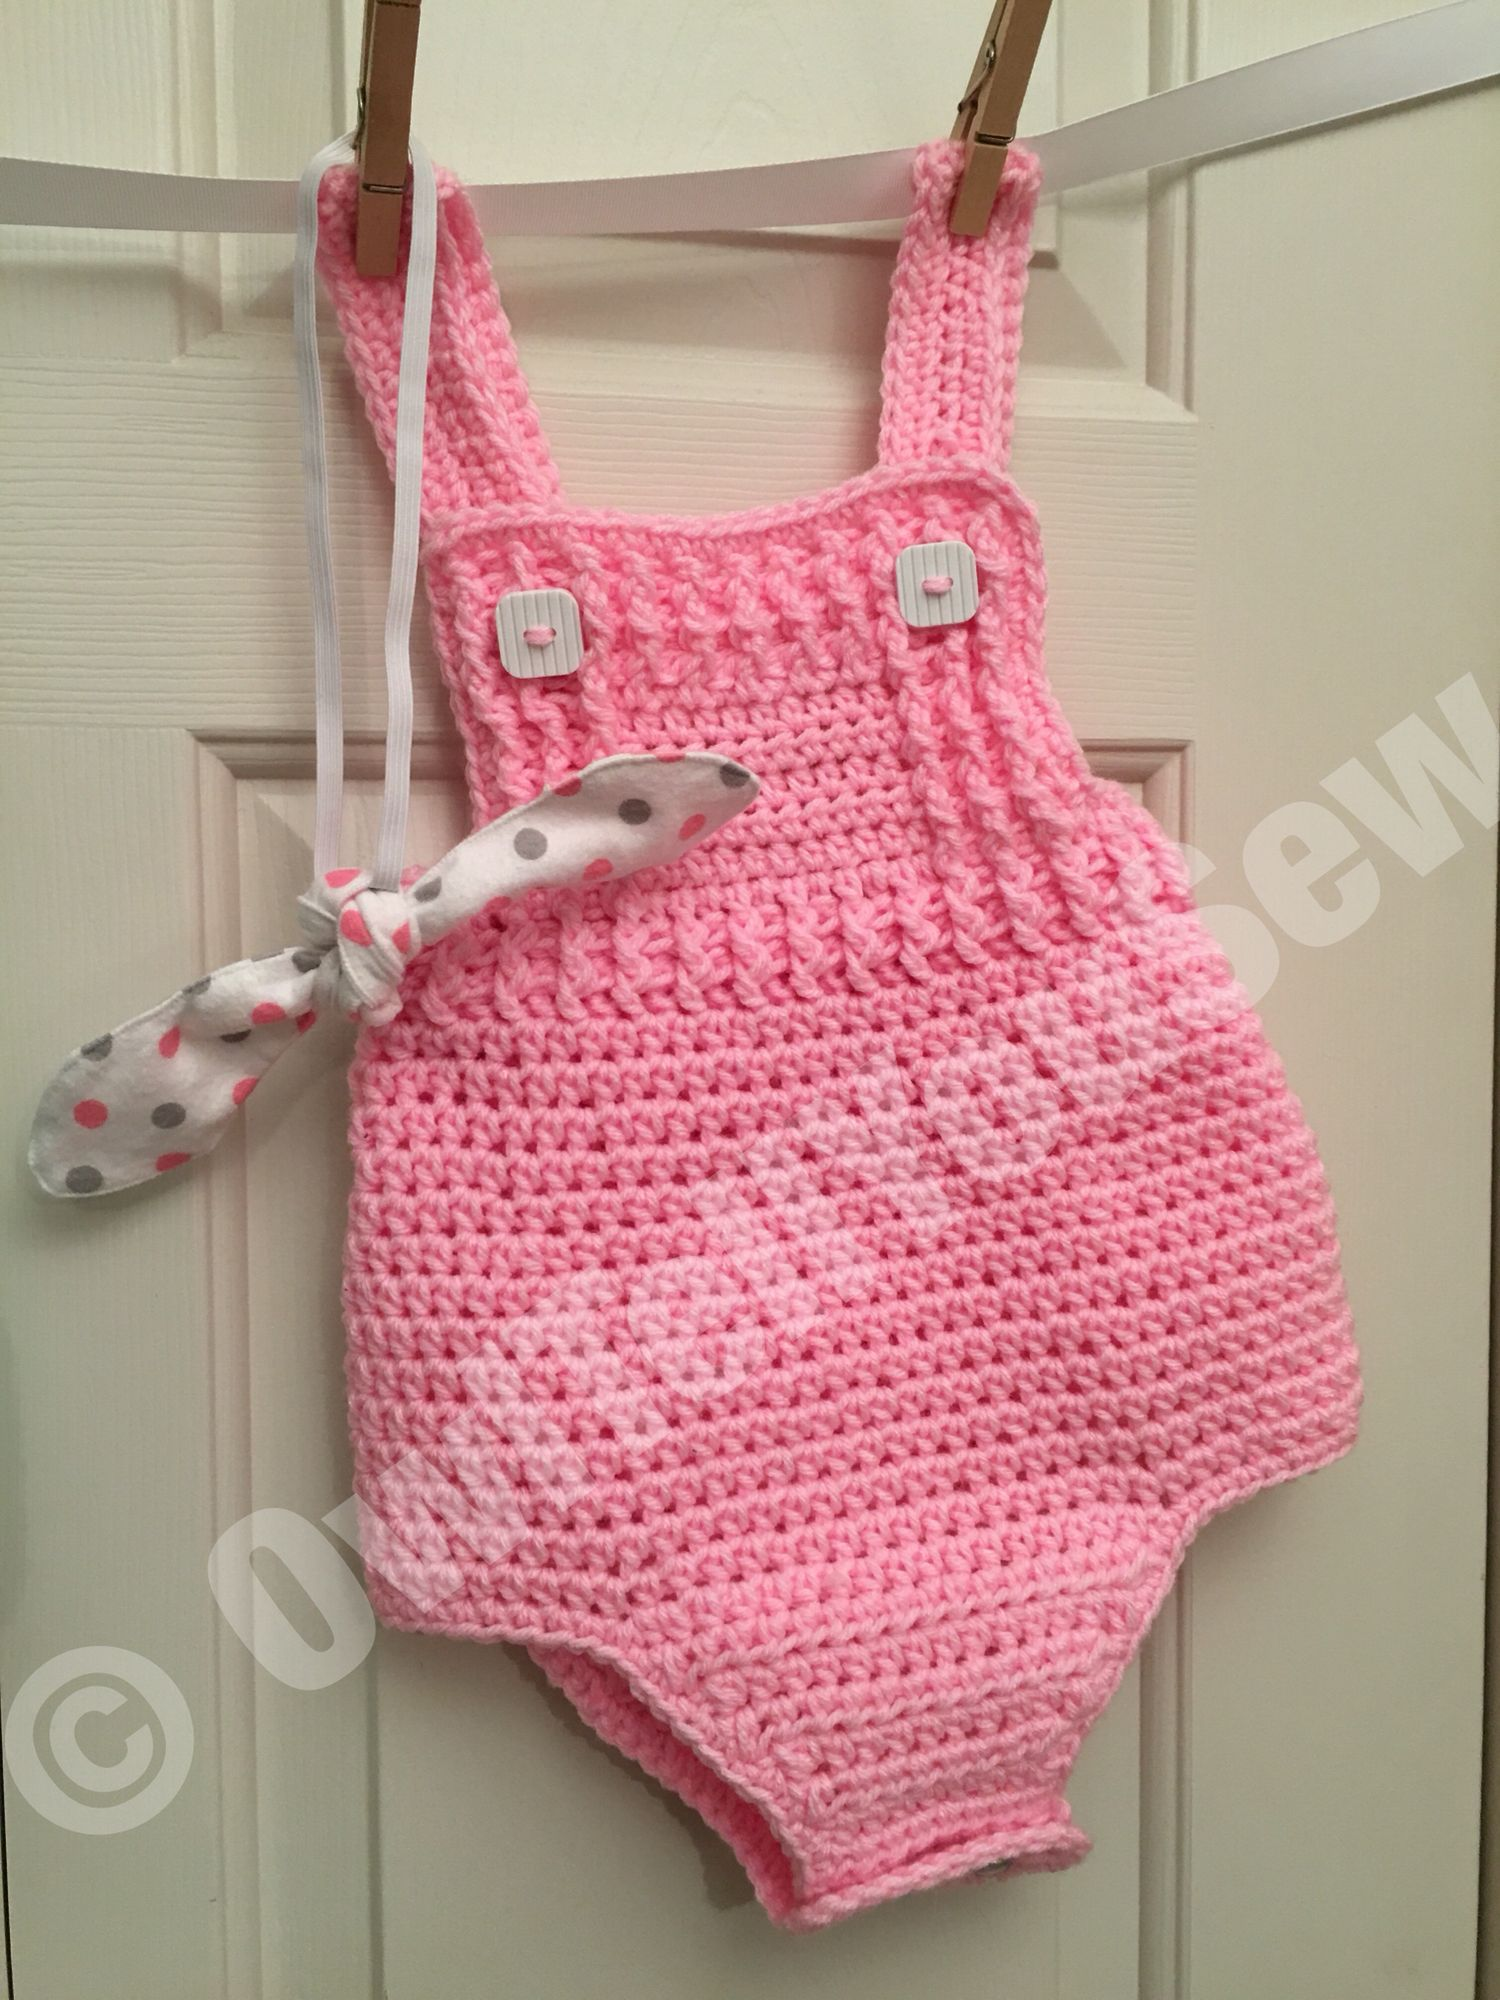 Crochet Baby Romper! Etsy store coming soon | Baby | Pinterest ...